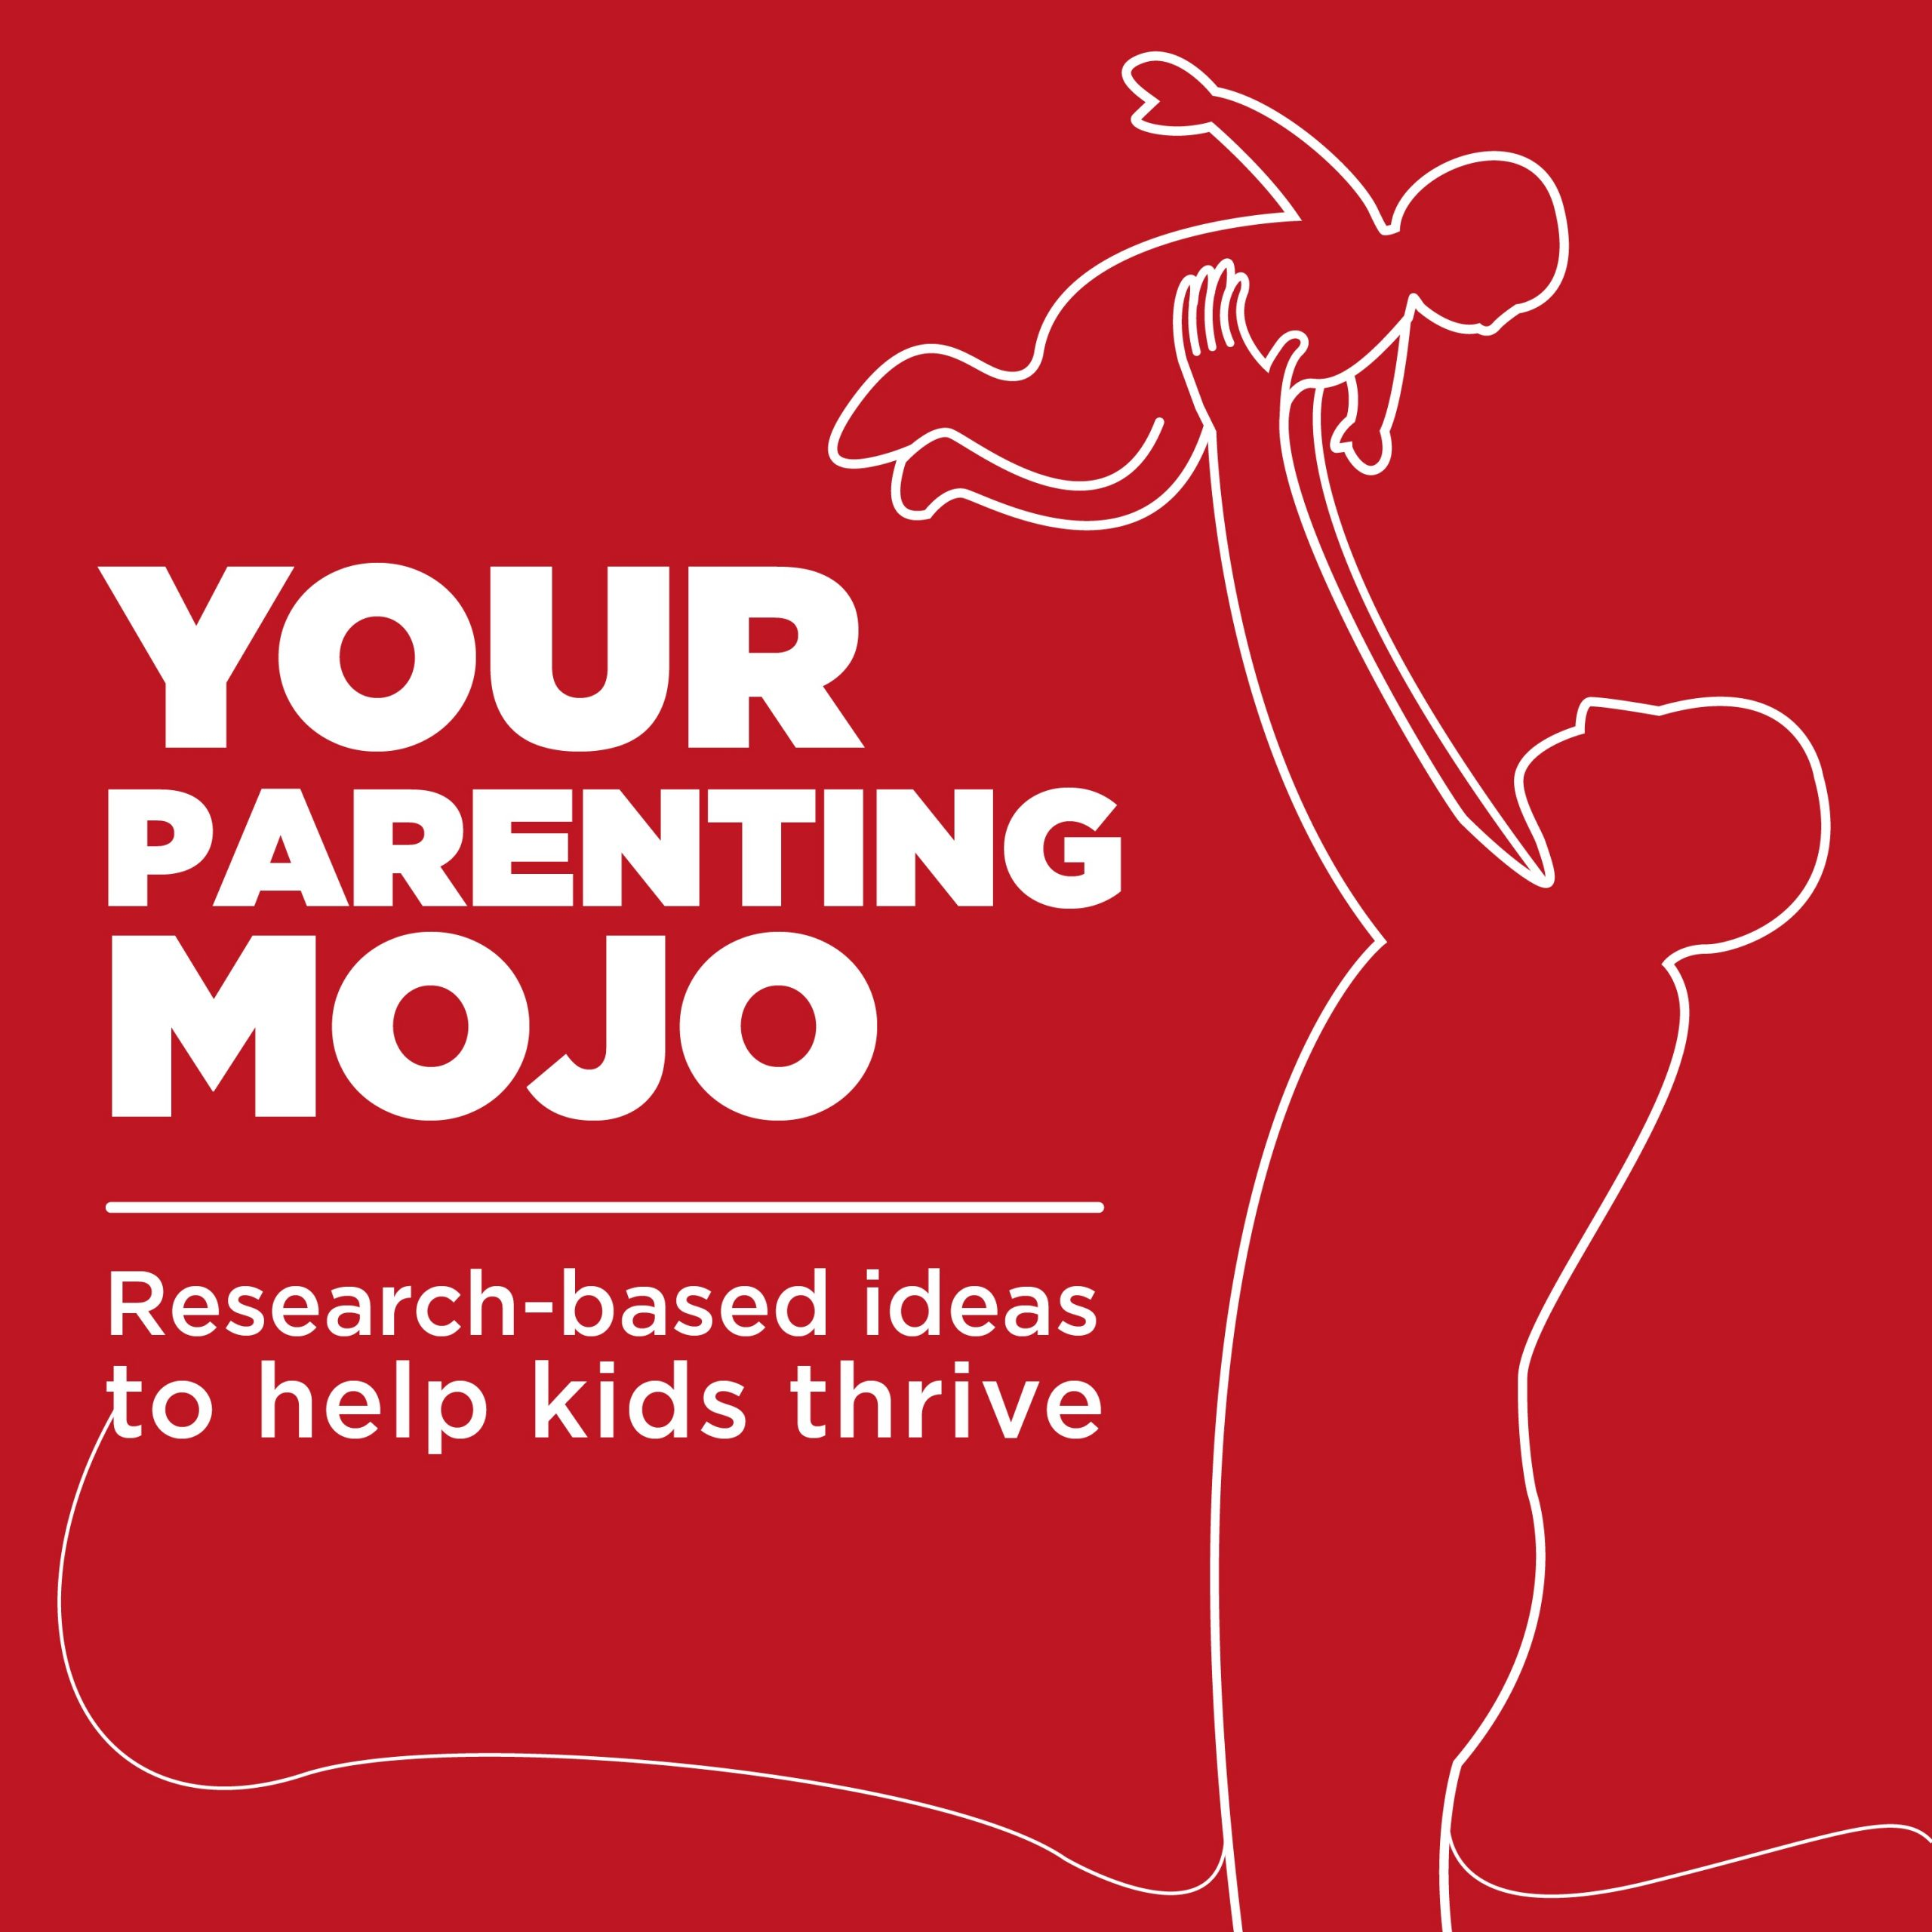 To Help Kids Thrive Coach Their Parents >> Your Parenting Mojo Respectful Research Based Parenting Ideas To